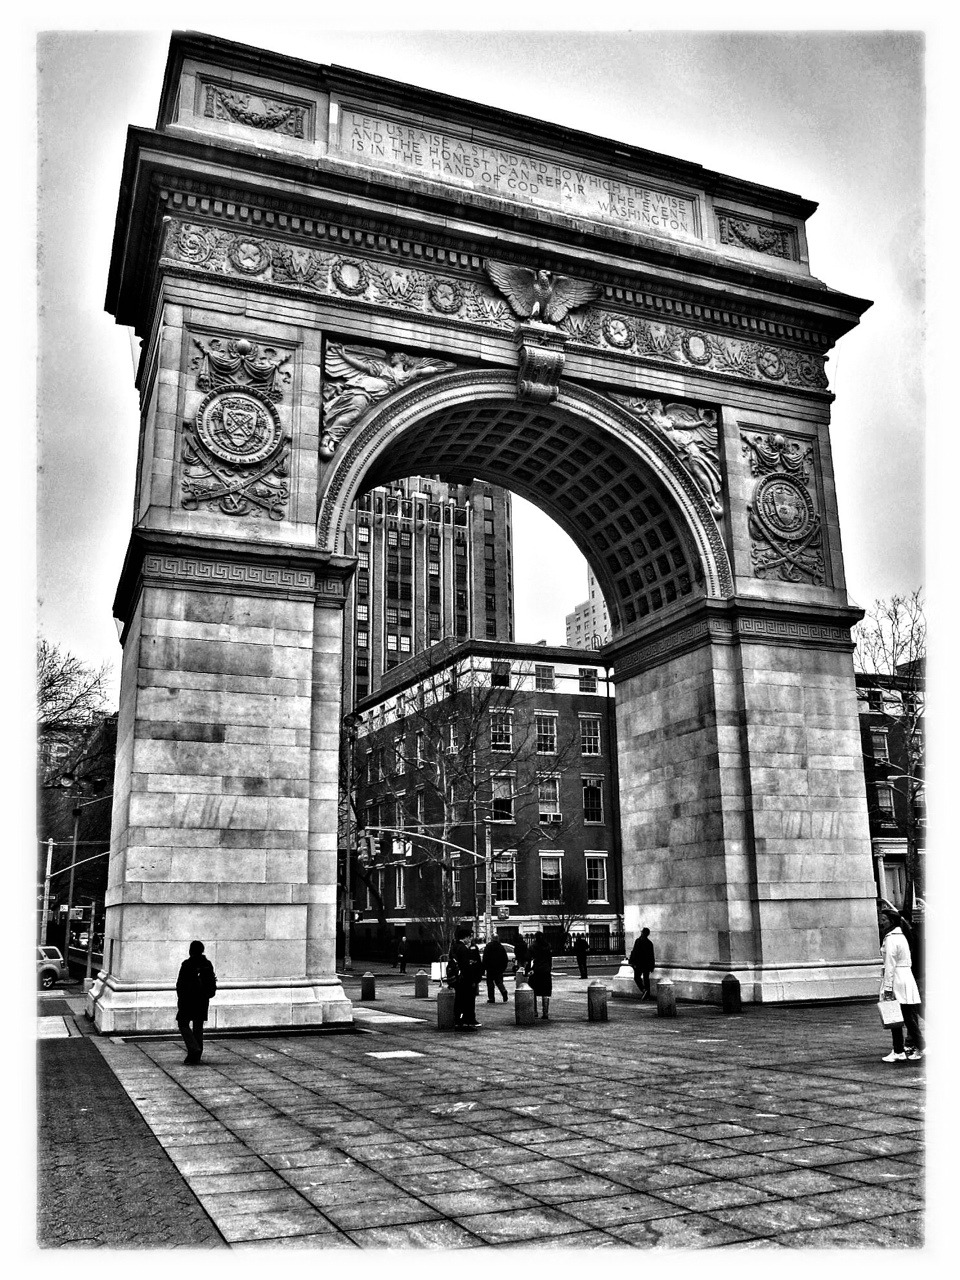 87 - The Arch   #366Project